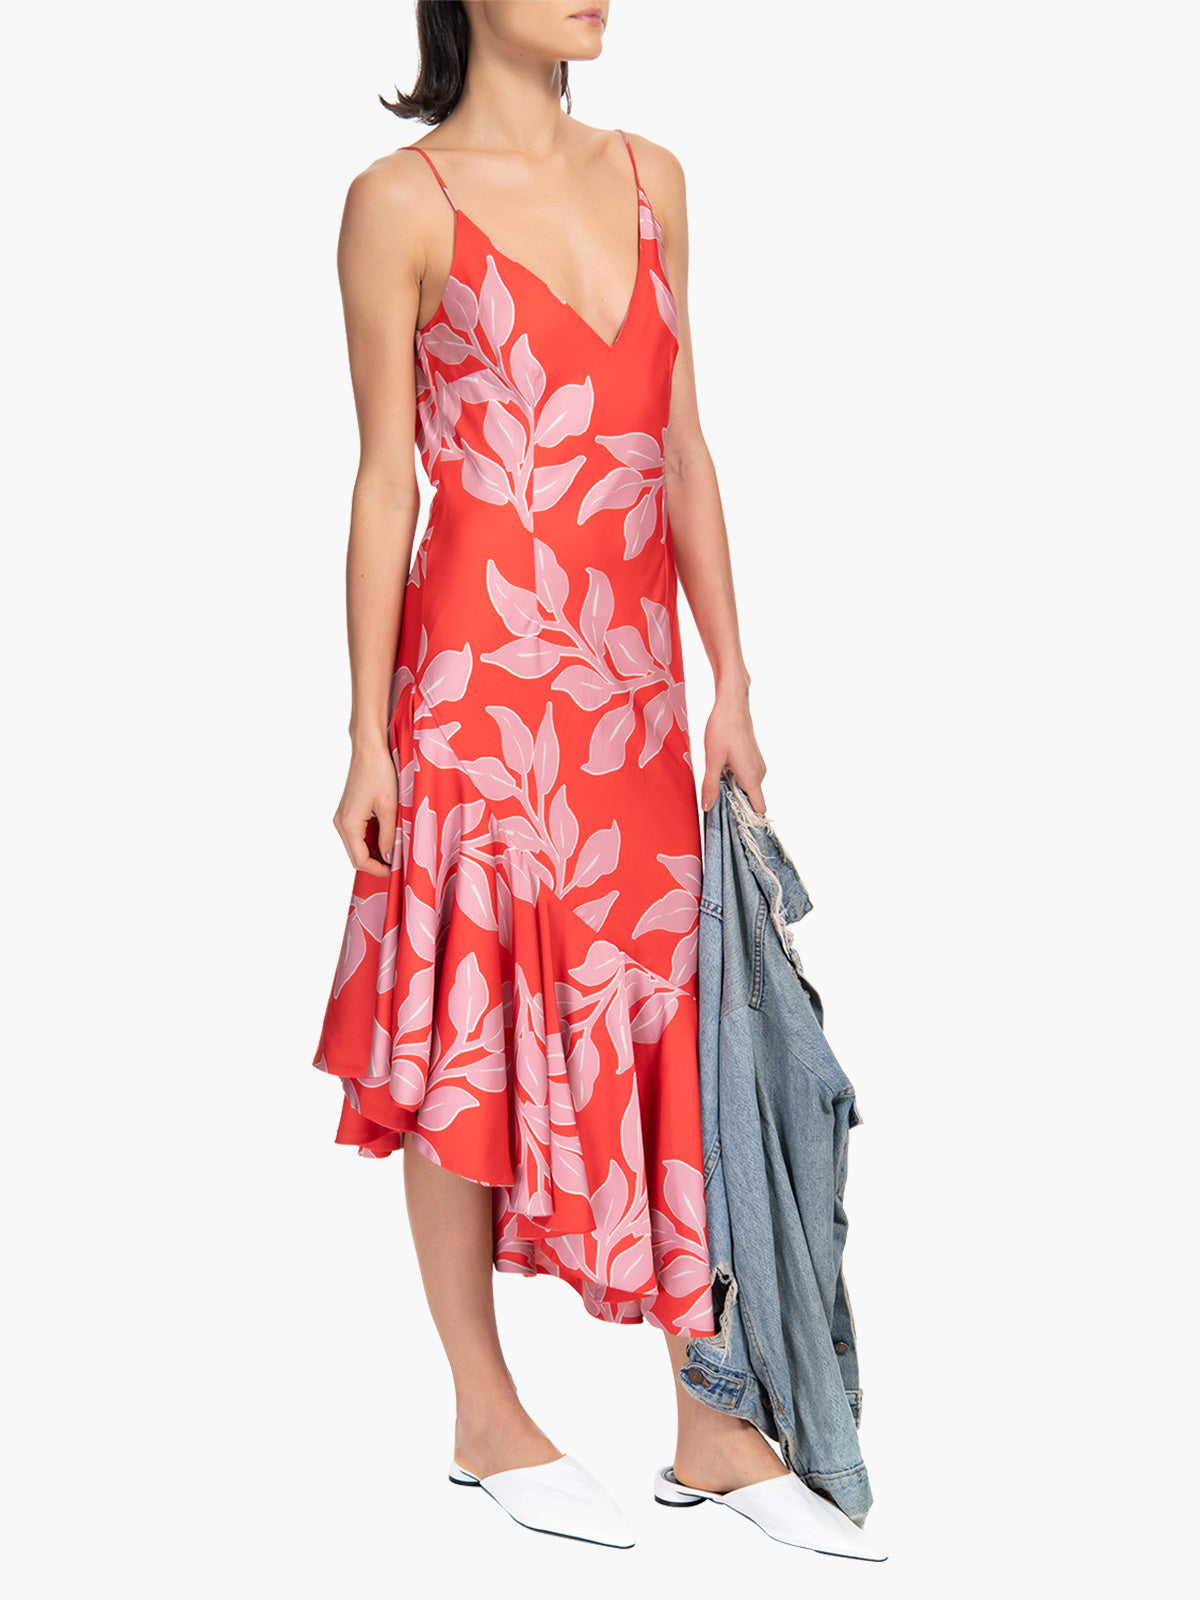 Ruffle Hem Slip Dress | Leaf Print Ruffle Hem Slip Dress | Leaf Print